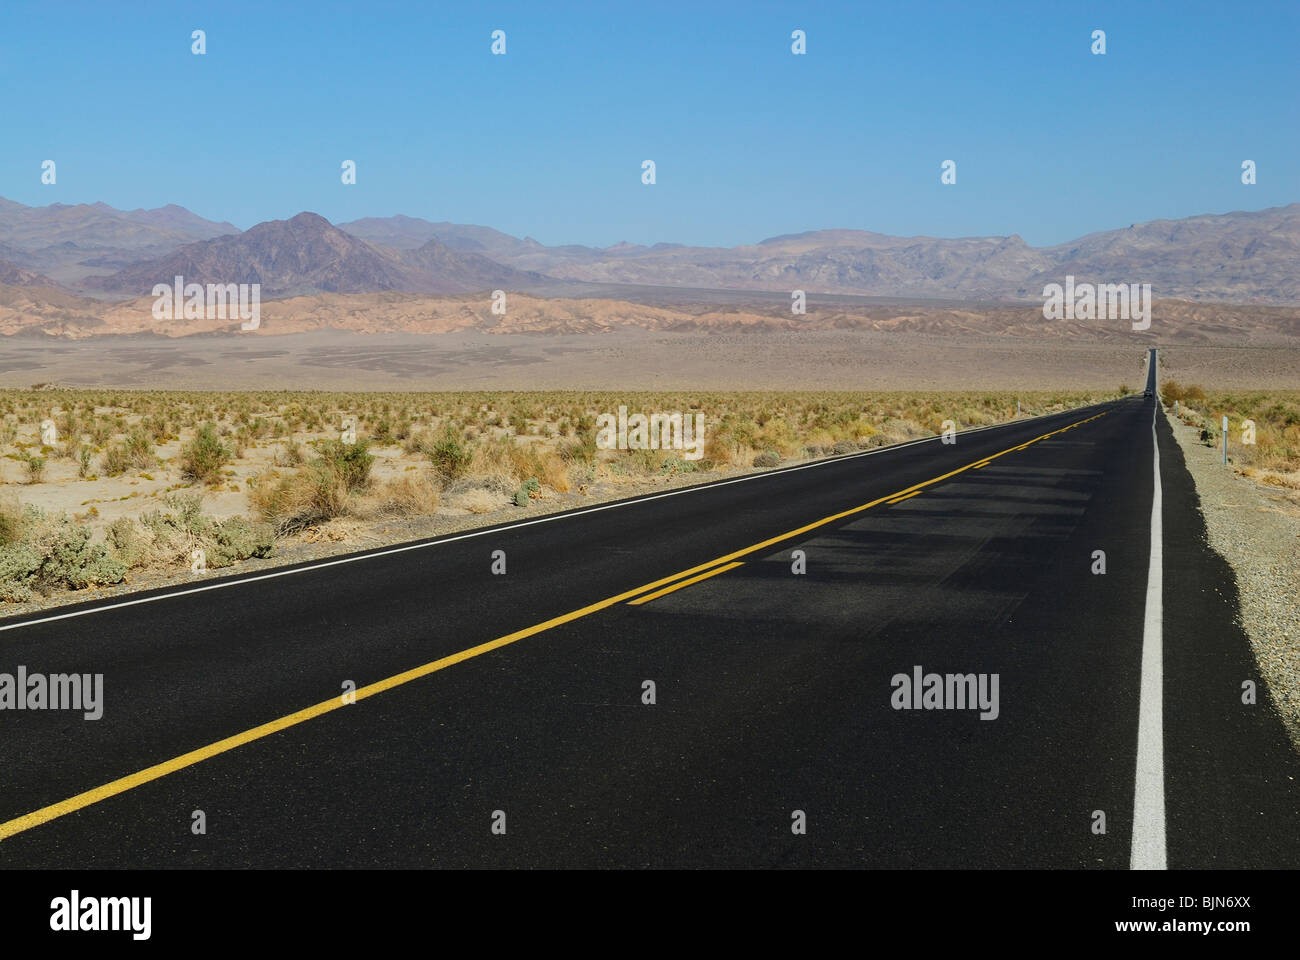 Long paved road crossing Death Valley, California state - Stock Image